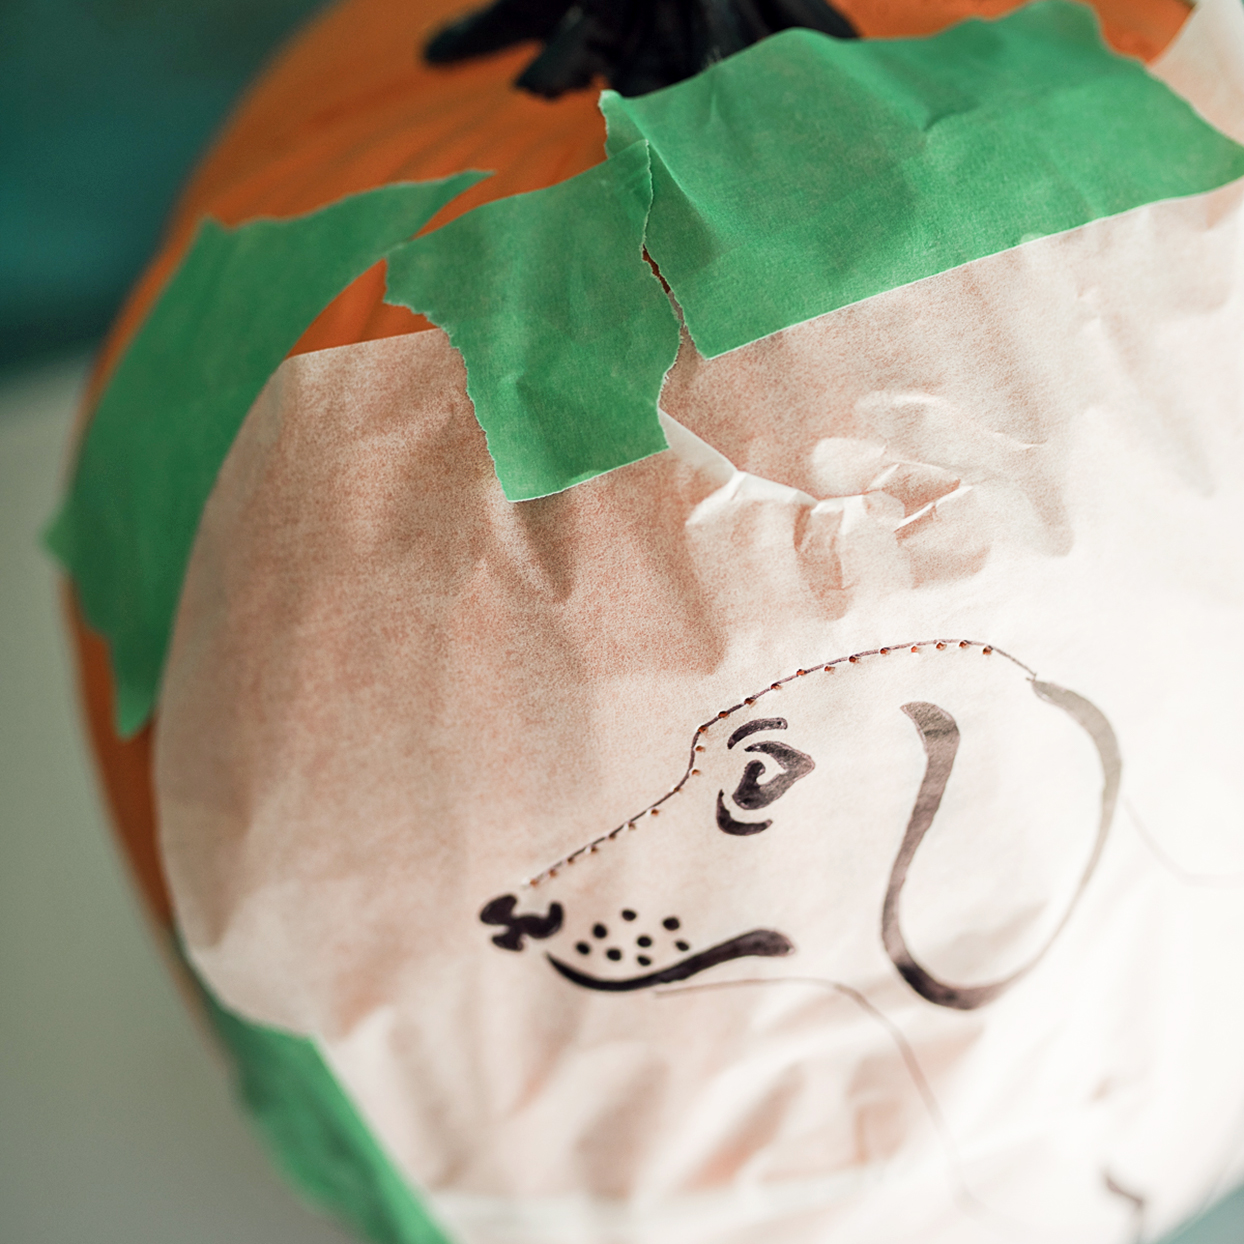 dog pumpkin carving stencil taped onto orange pumpkin with pinpoints